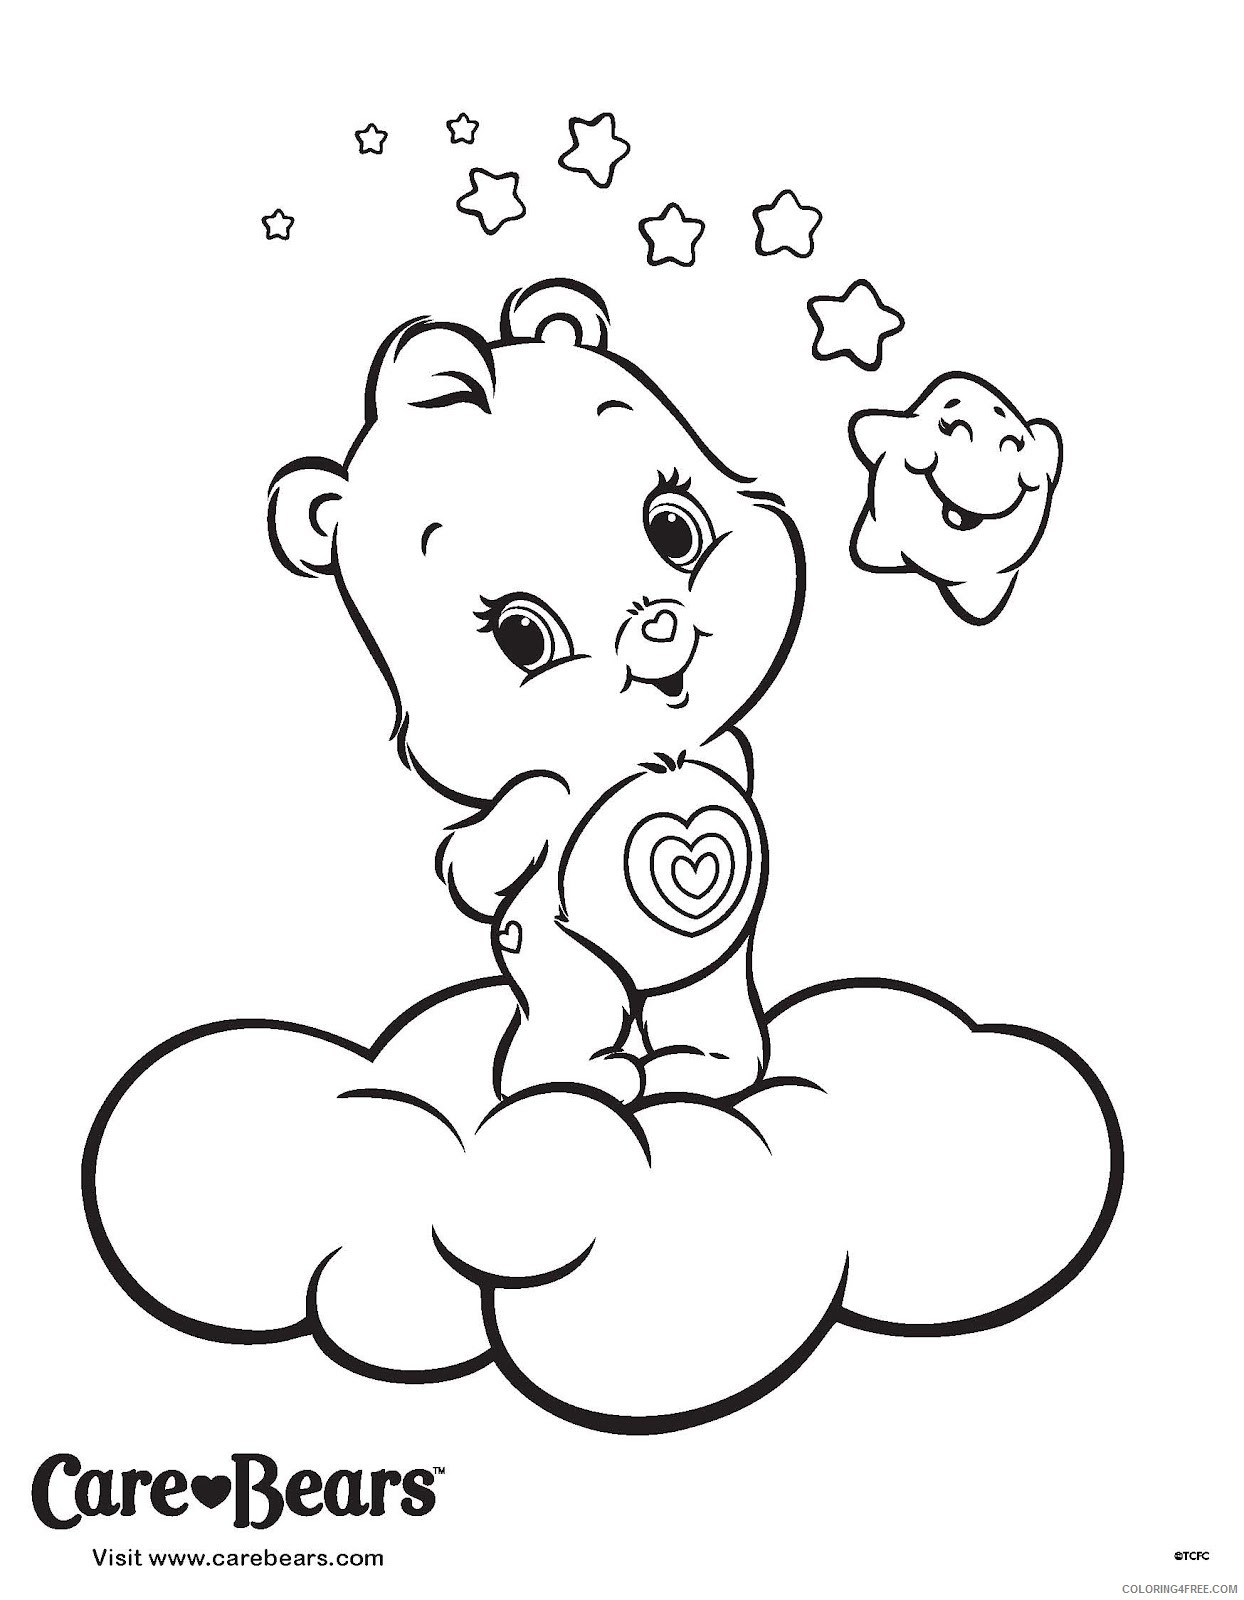 wonderheart care bears coloring pages Coloring4free